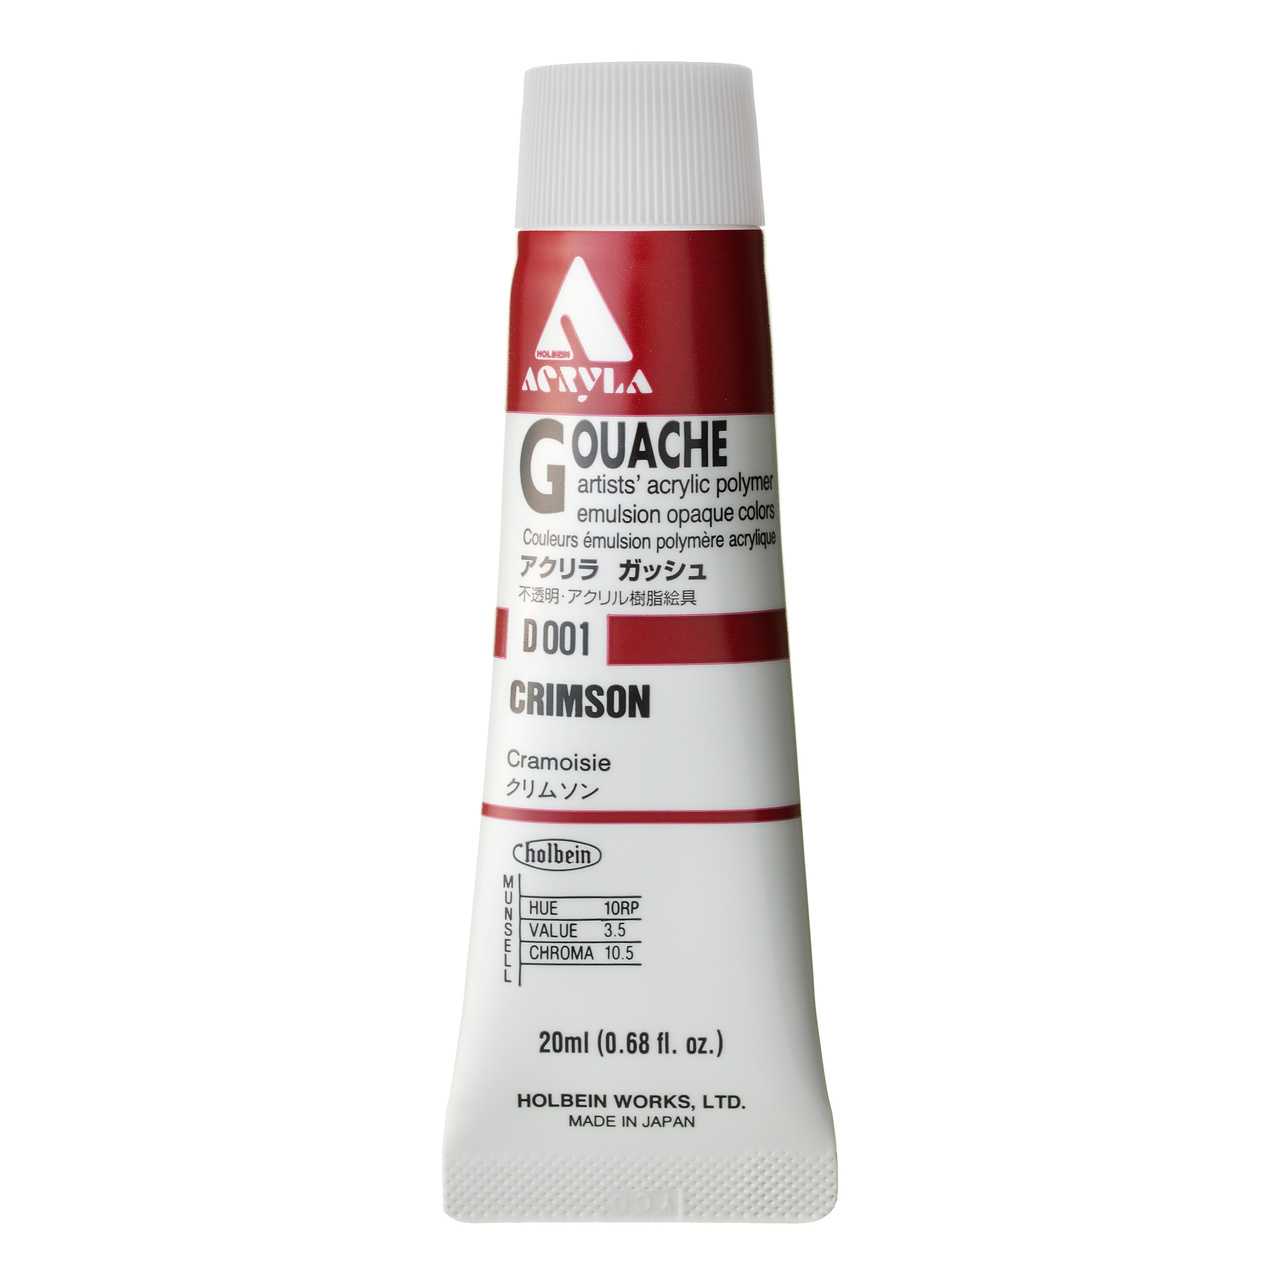 ACRYLA GOUACHE 20ML CRIM/PRIM RED